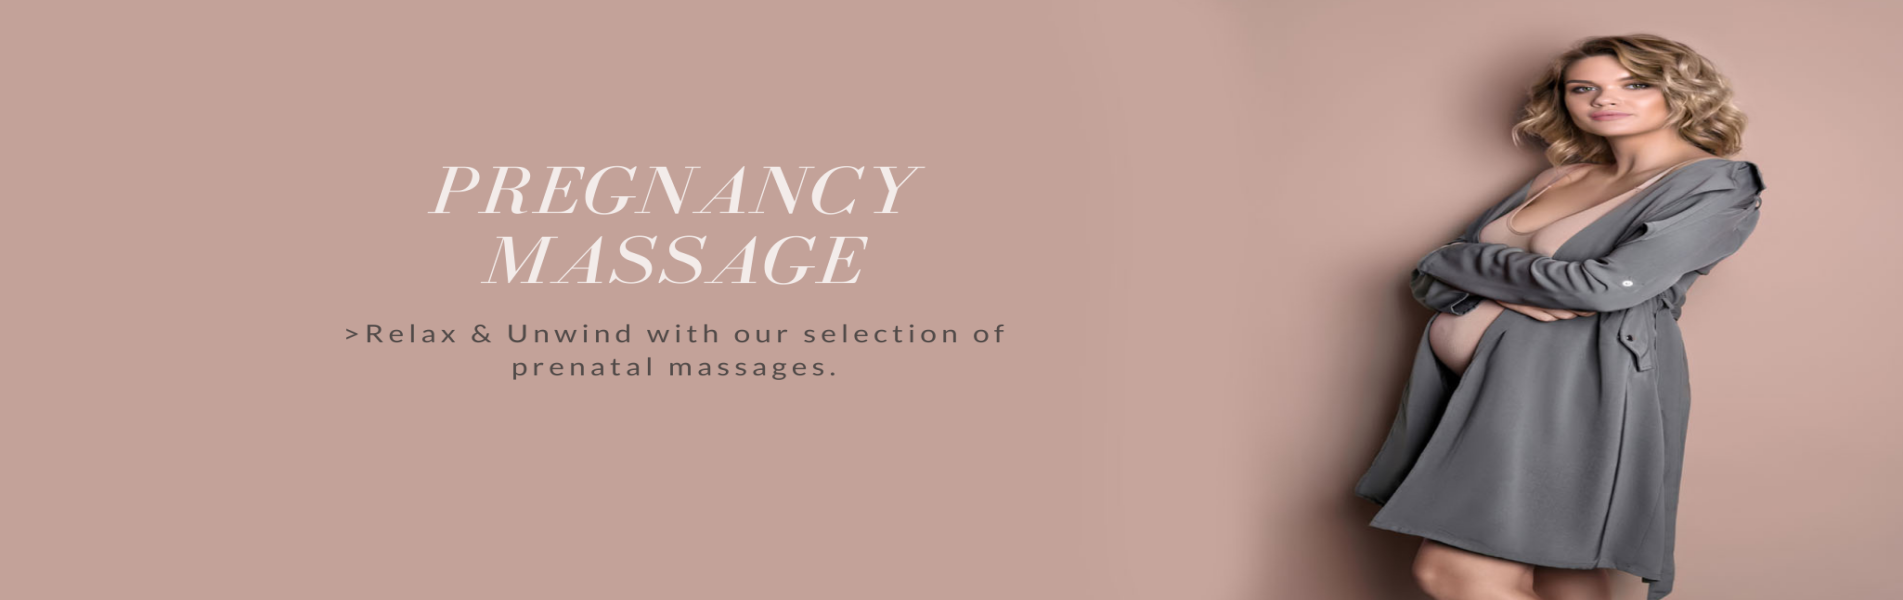 Pregnancy Massage | Kettering | Pregnancy Massage Kettering | Pregnacy Massage Northamptonshire